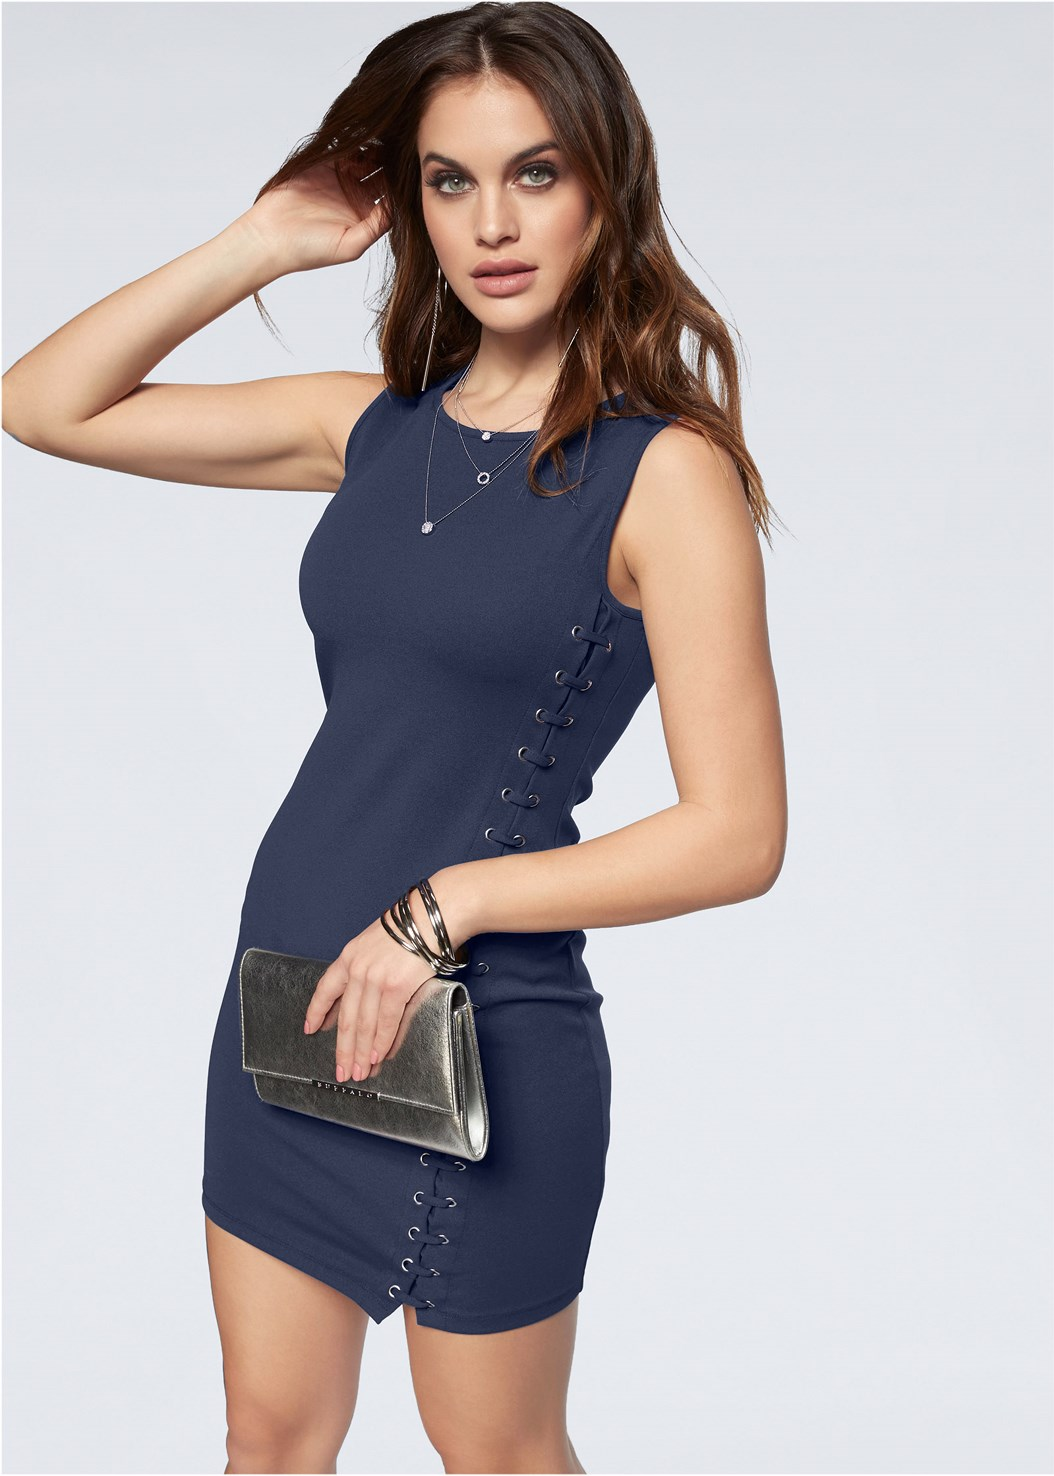 Lace Up Bodycon Dress,Push Up Bra Buy 2 For $40,Strappy Heels